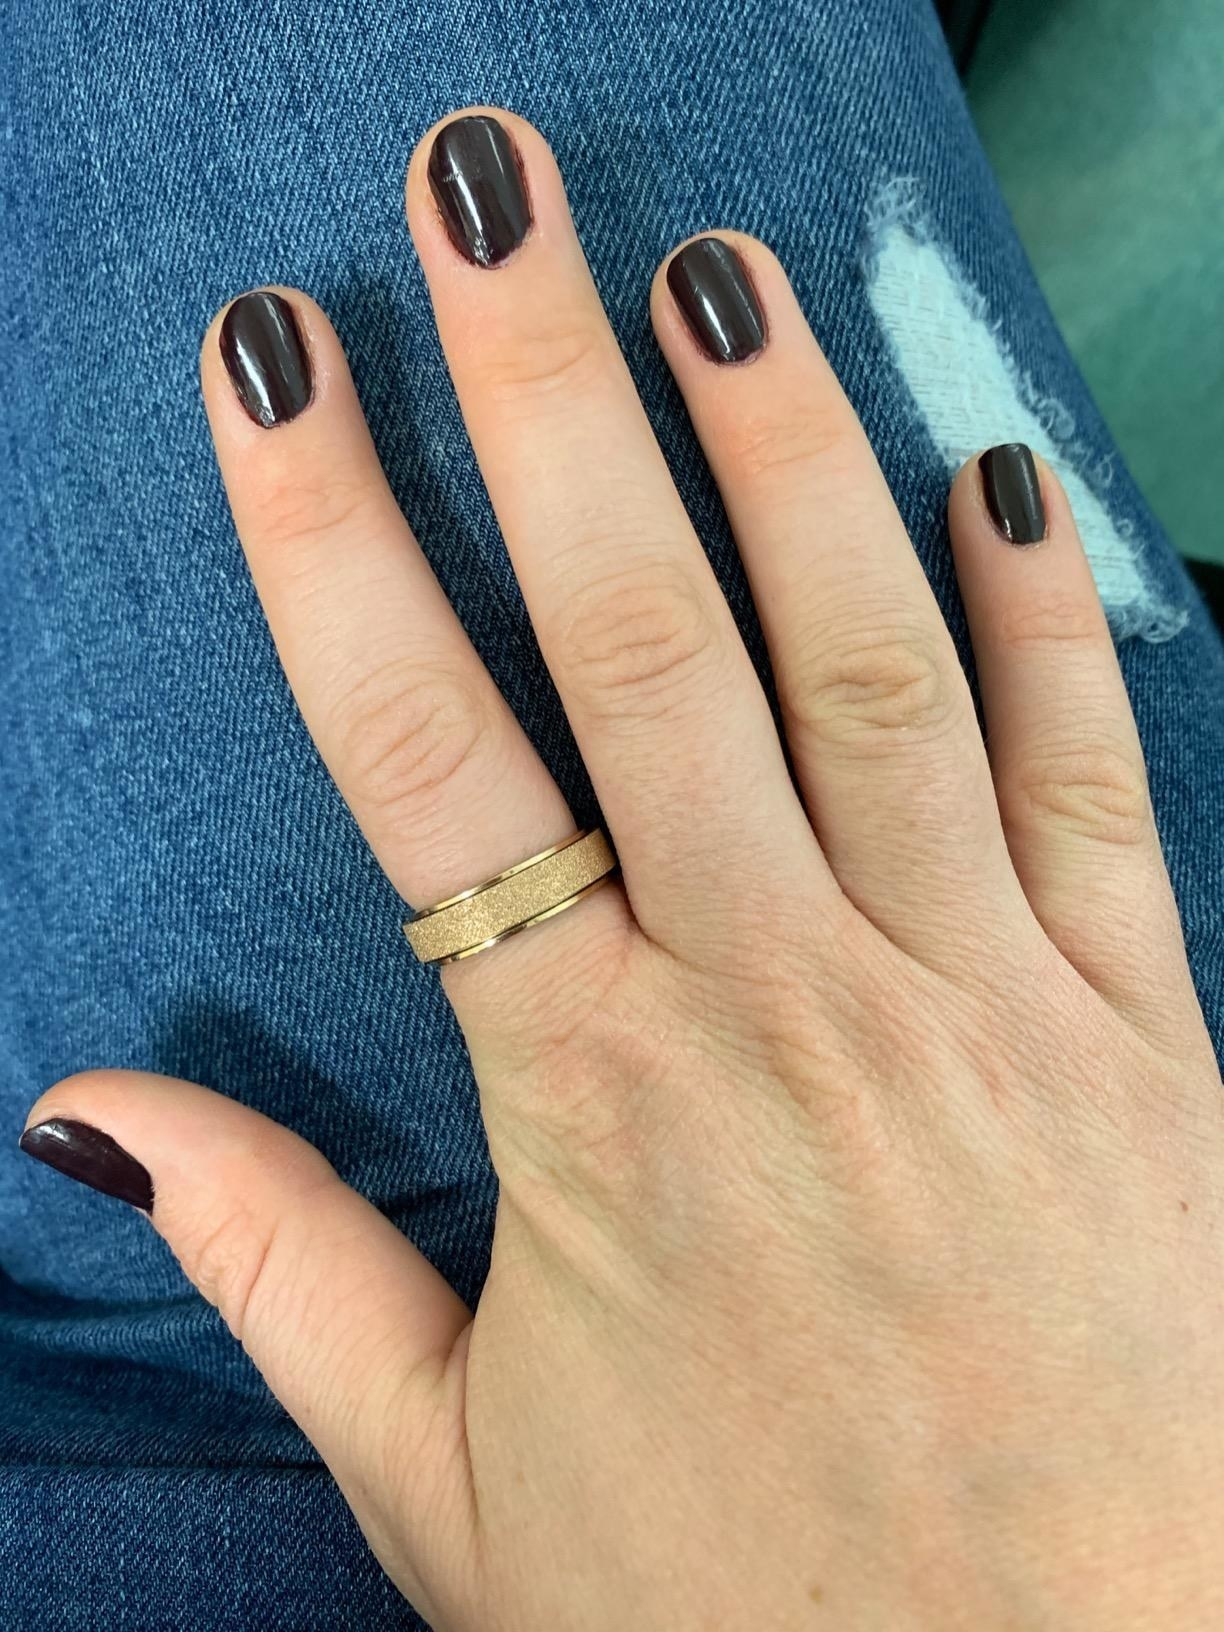 A reviewer showing the ring around their finger in gold